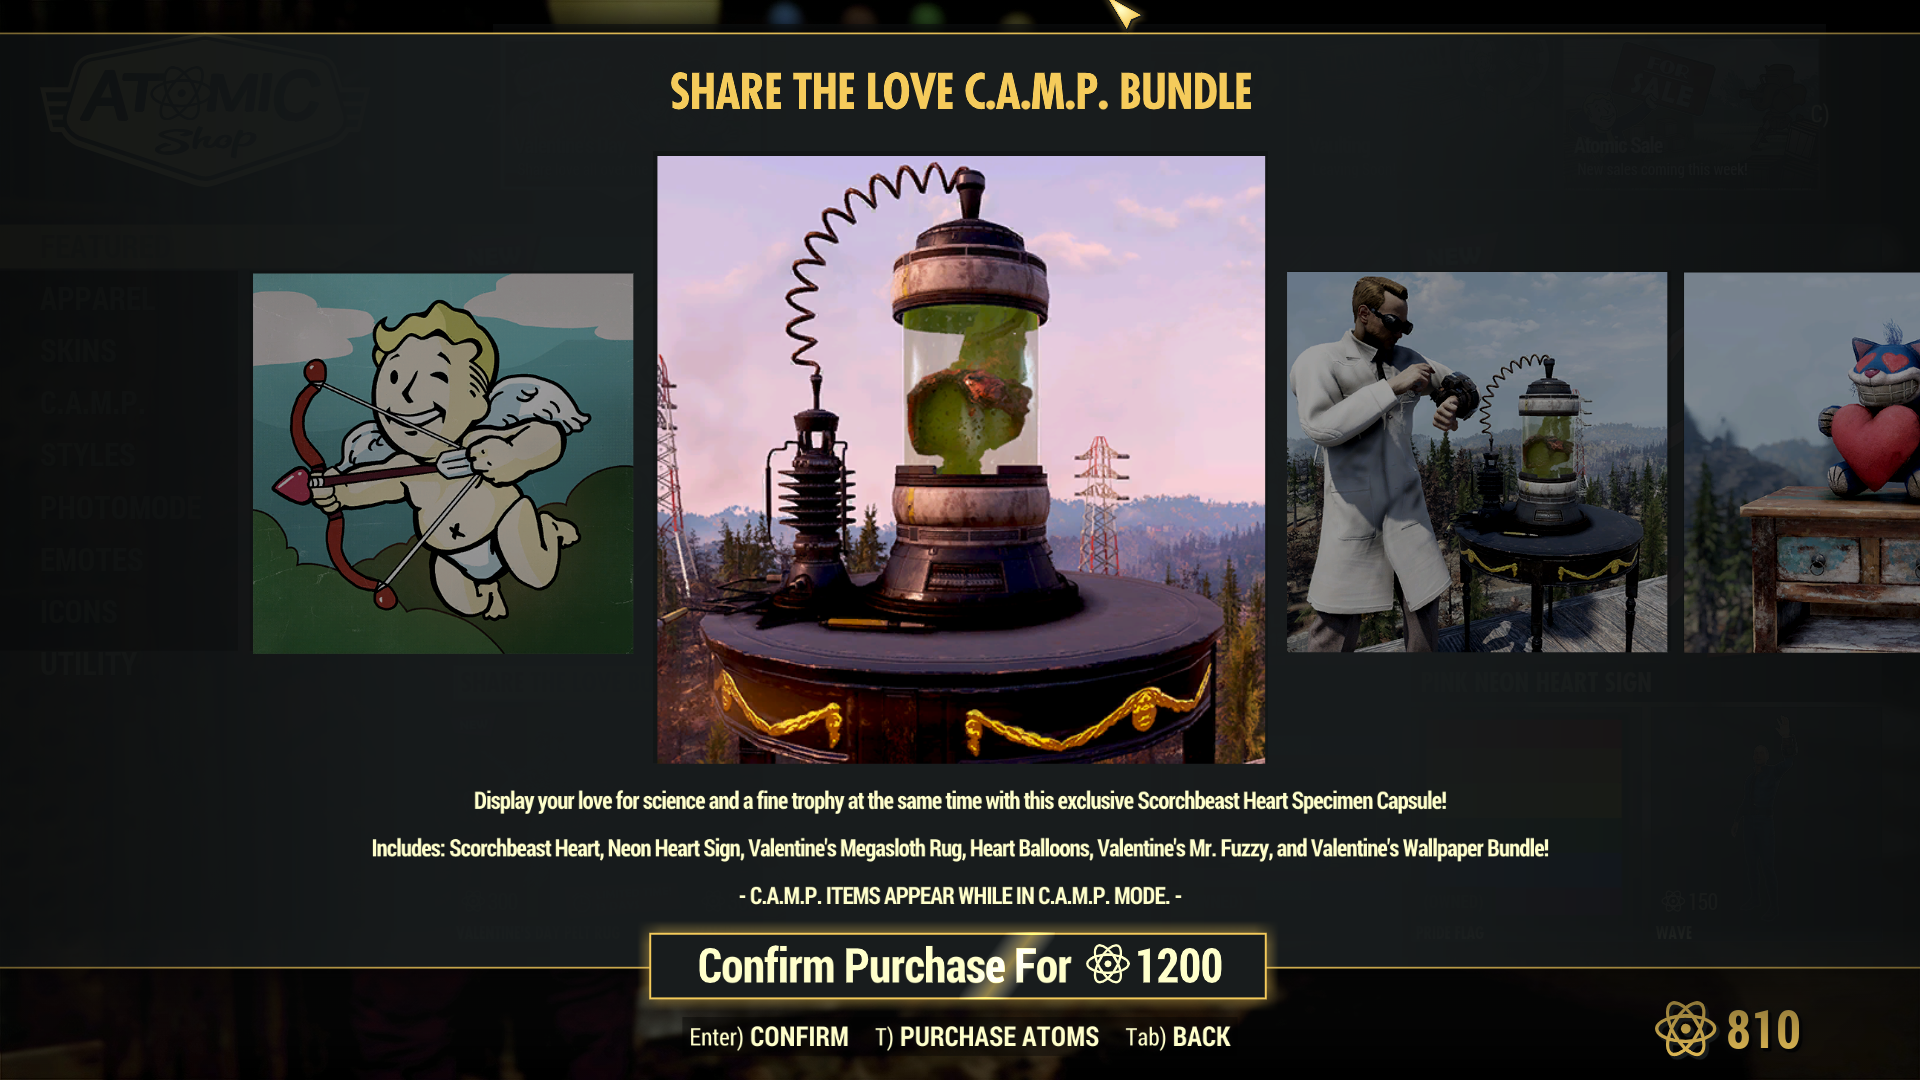 Share the Love CAMP Bundle